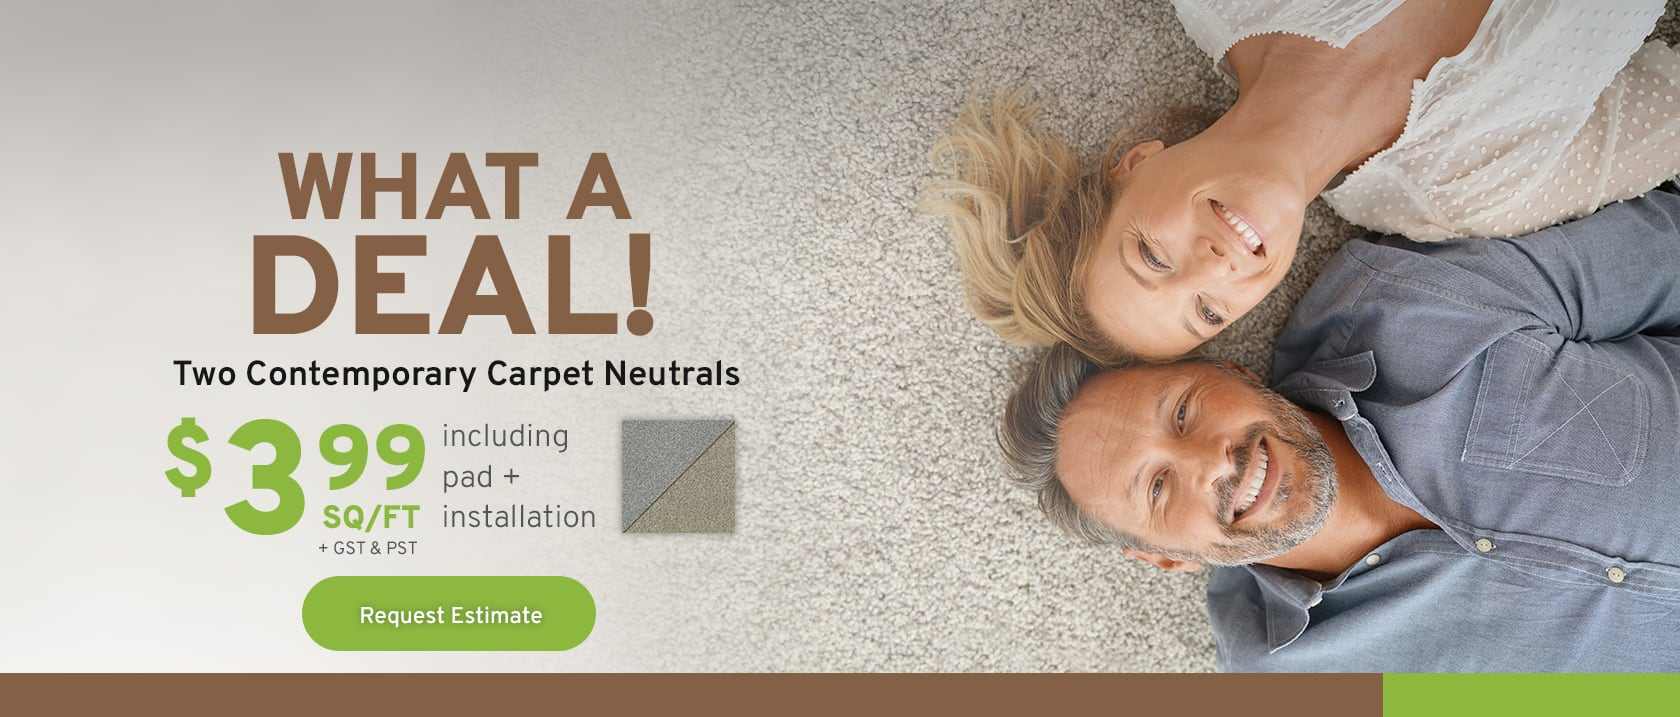 Contemporary Carpet Naturals Banner - Kingston Flooring